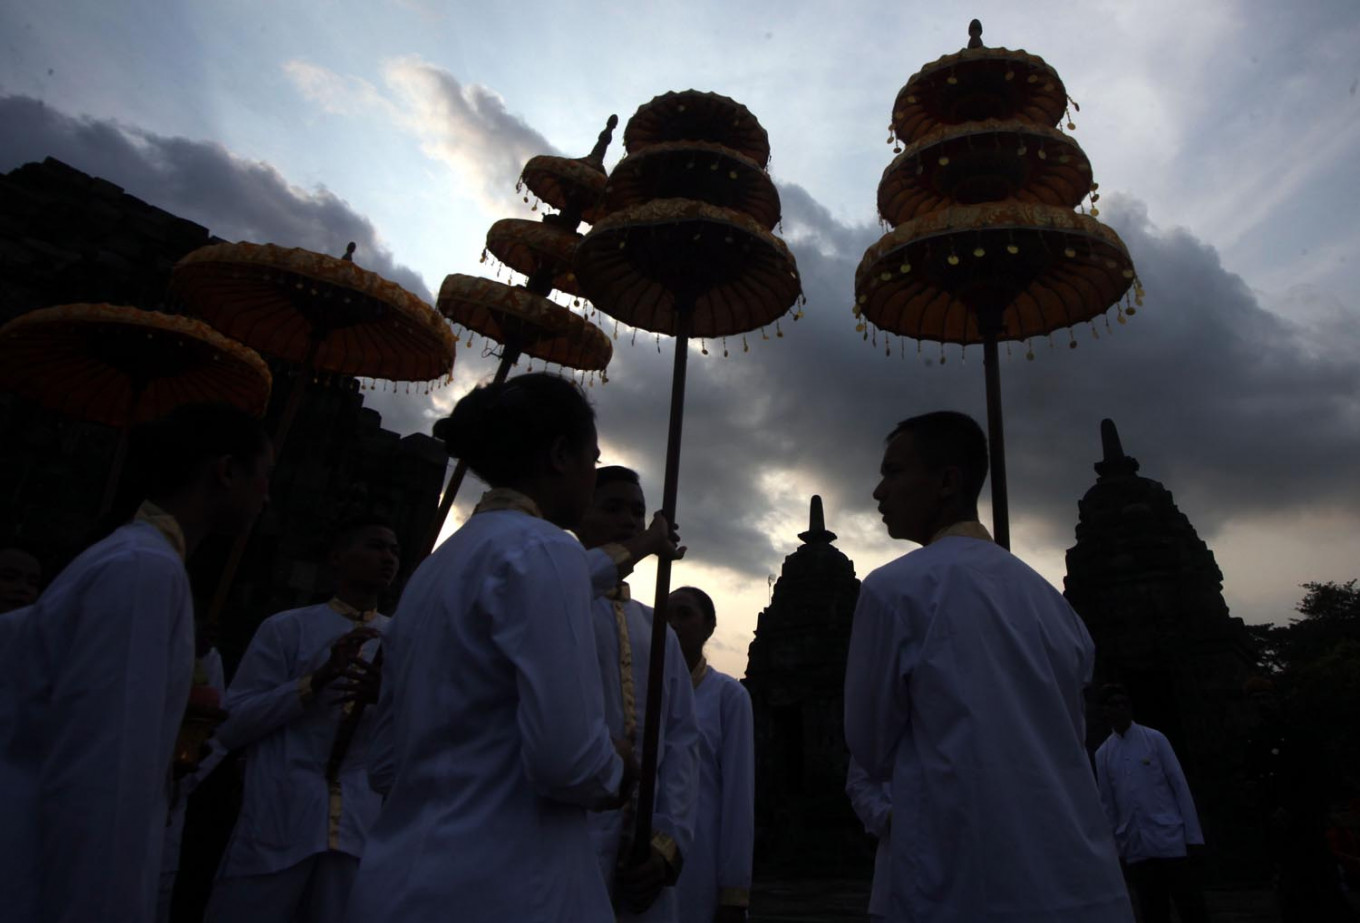 Buddhists put up umbrellas for a Waisak celebration in Lumbung Temple's courtyard, Central Java. JP/Boy T Harjanto